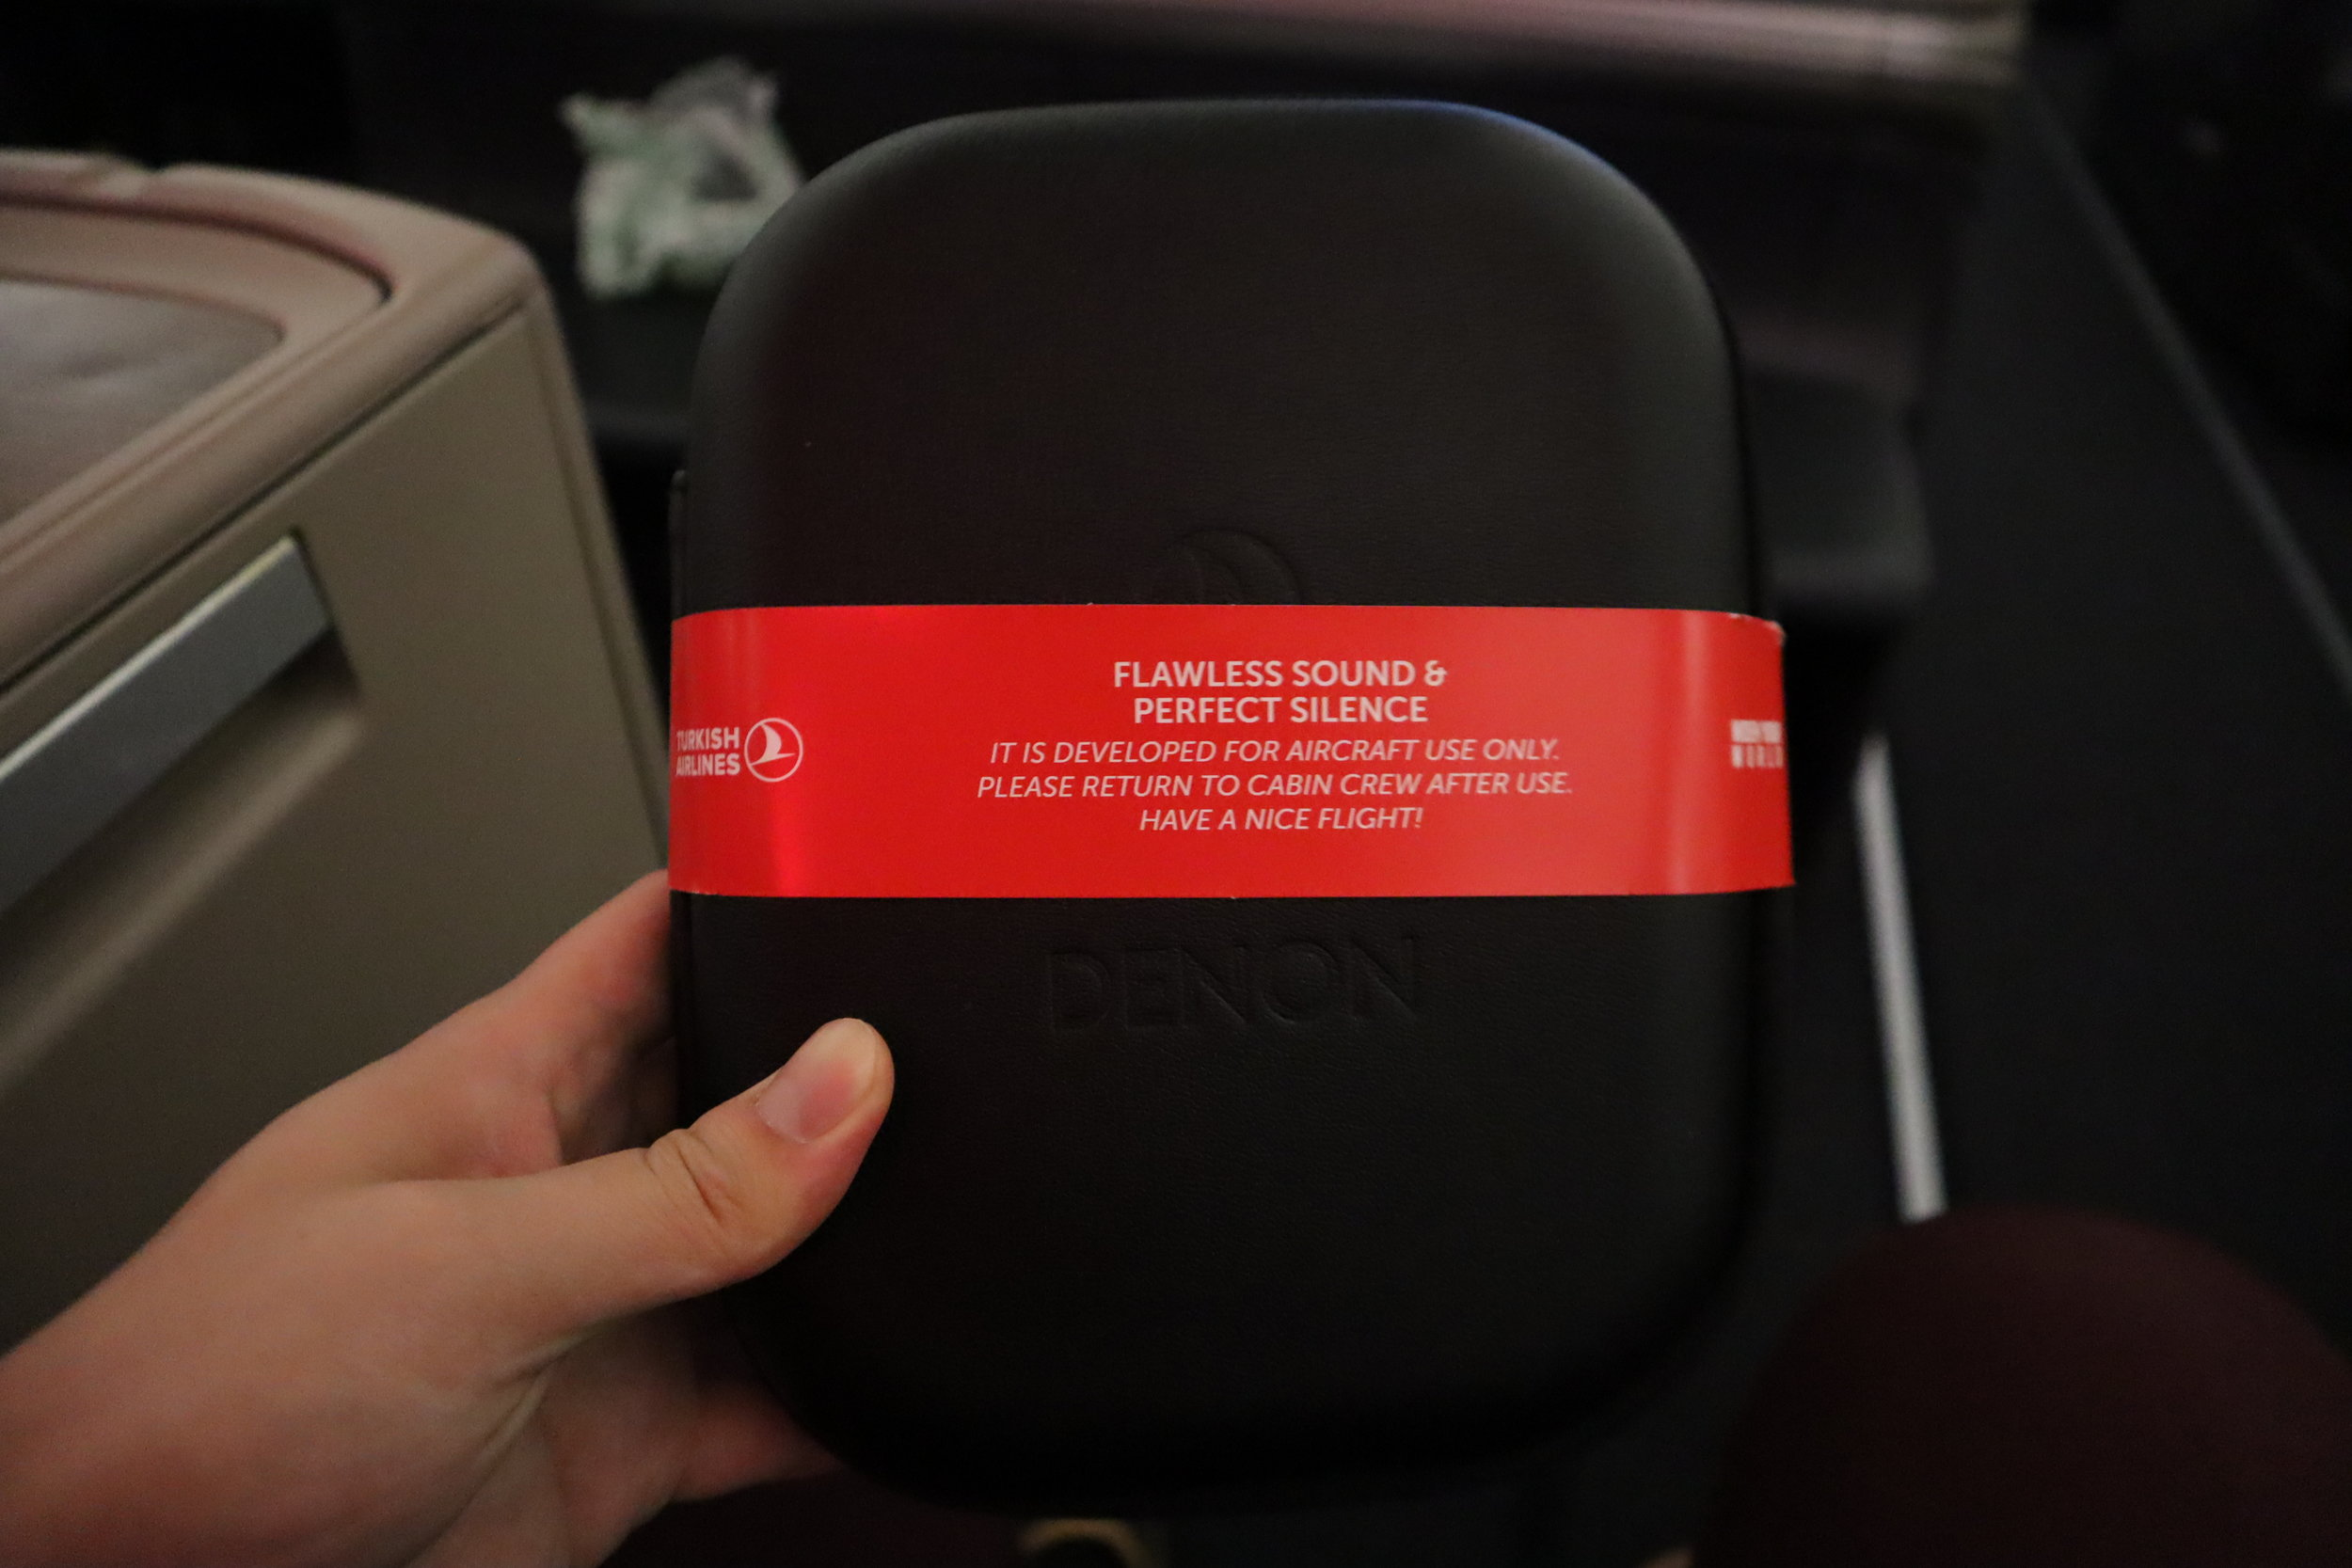 Turkish Airlines A330 business class – Headphones